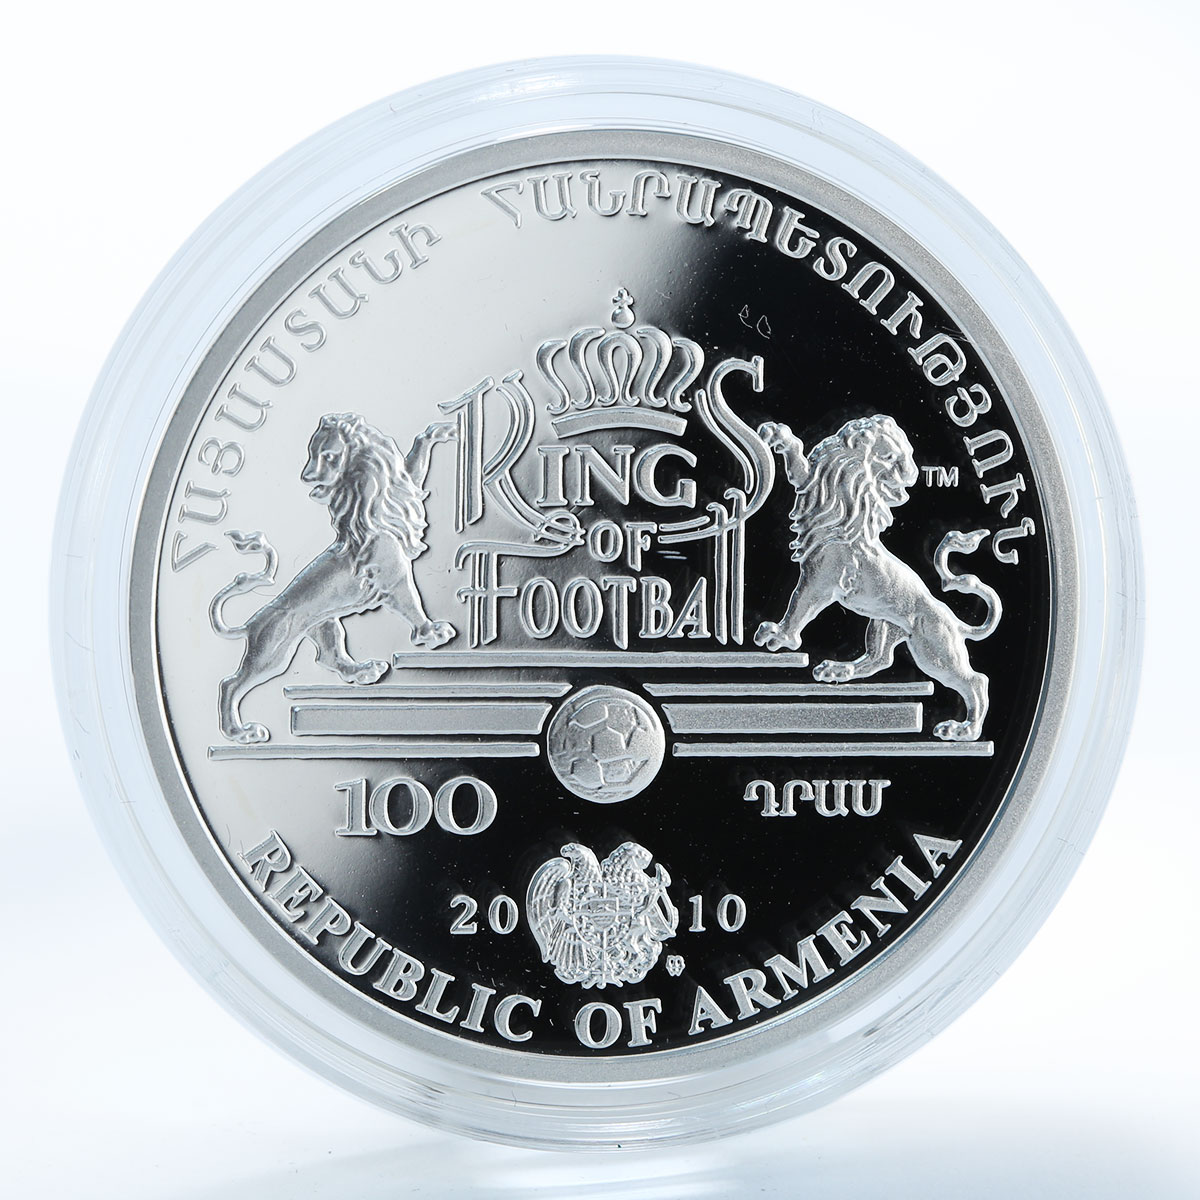 Armenia 100 drams Johan Cruyff Netherlands footballer silver coloured proof 2010